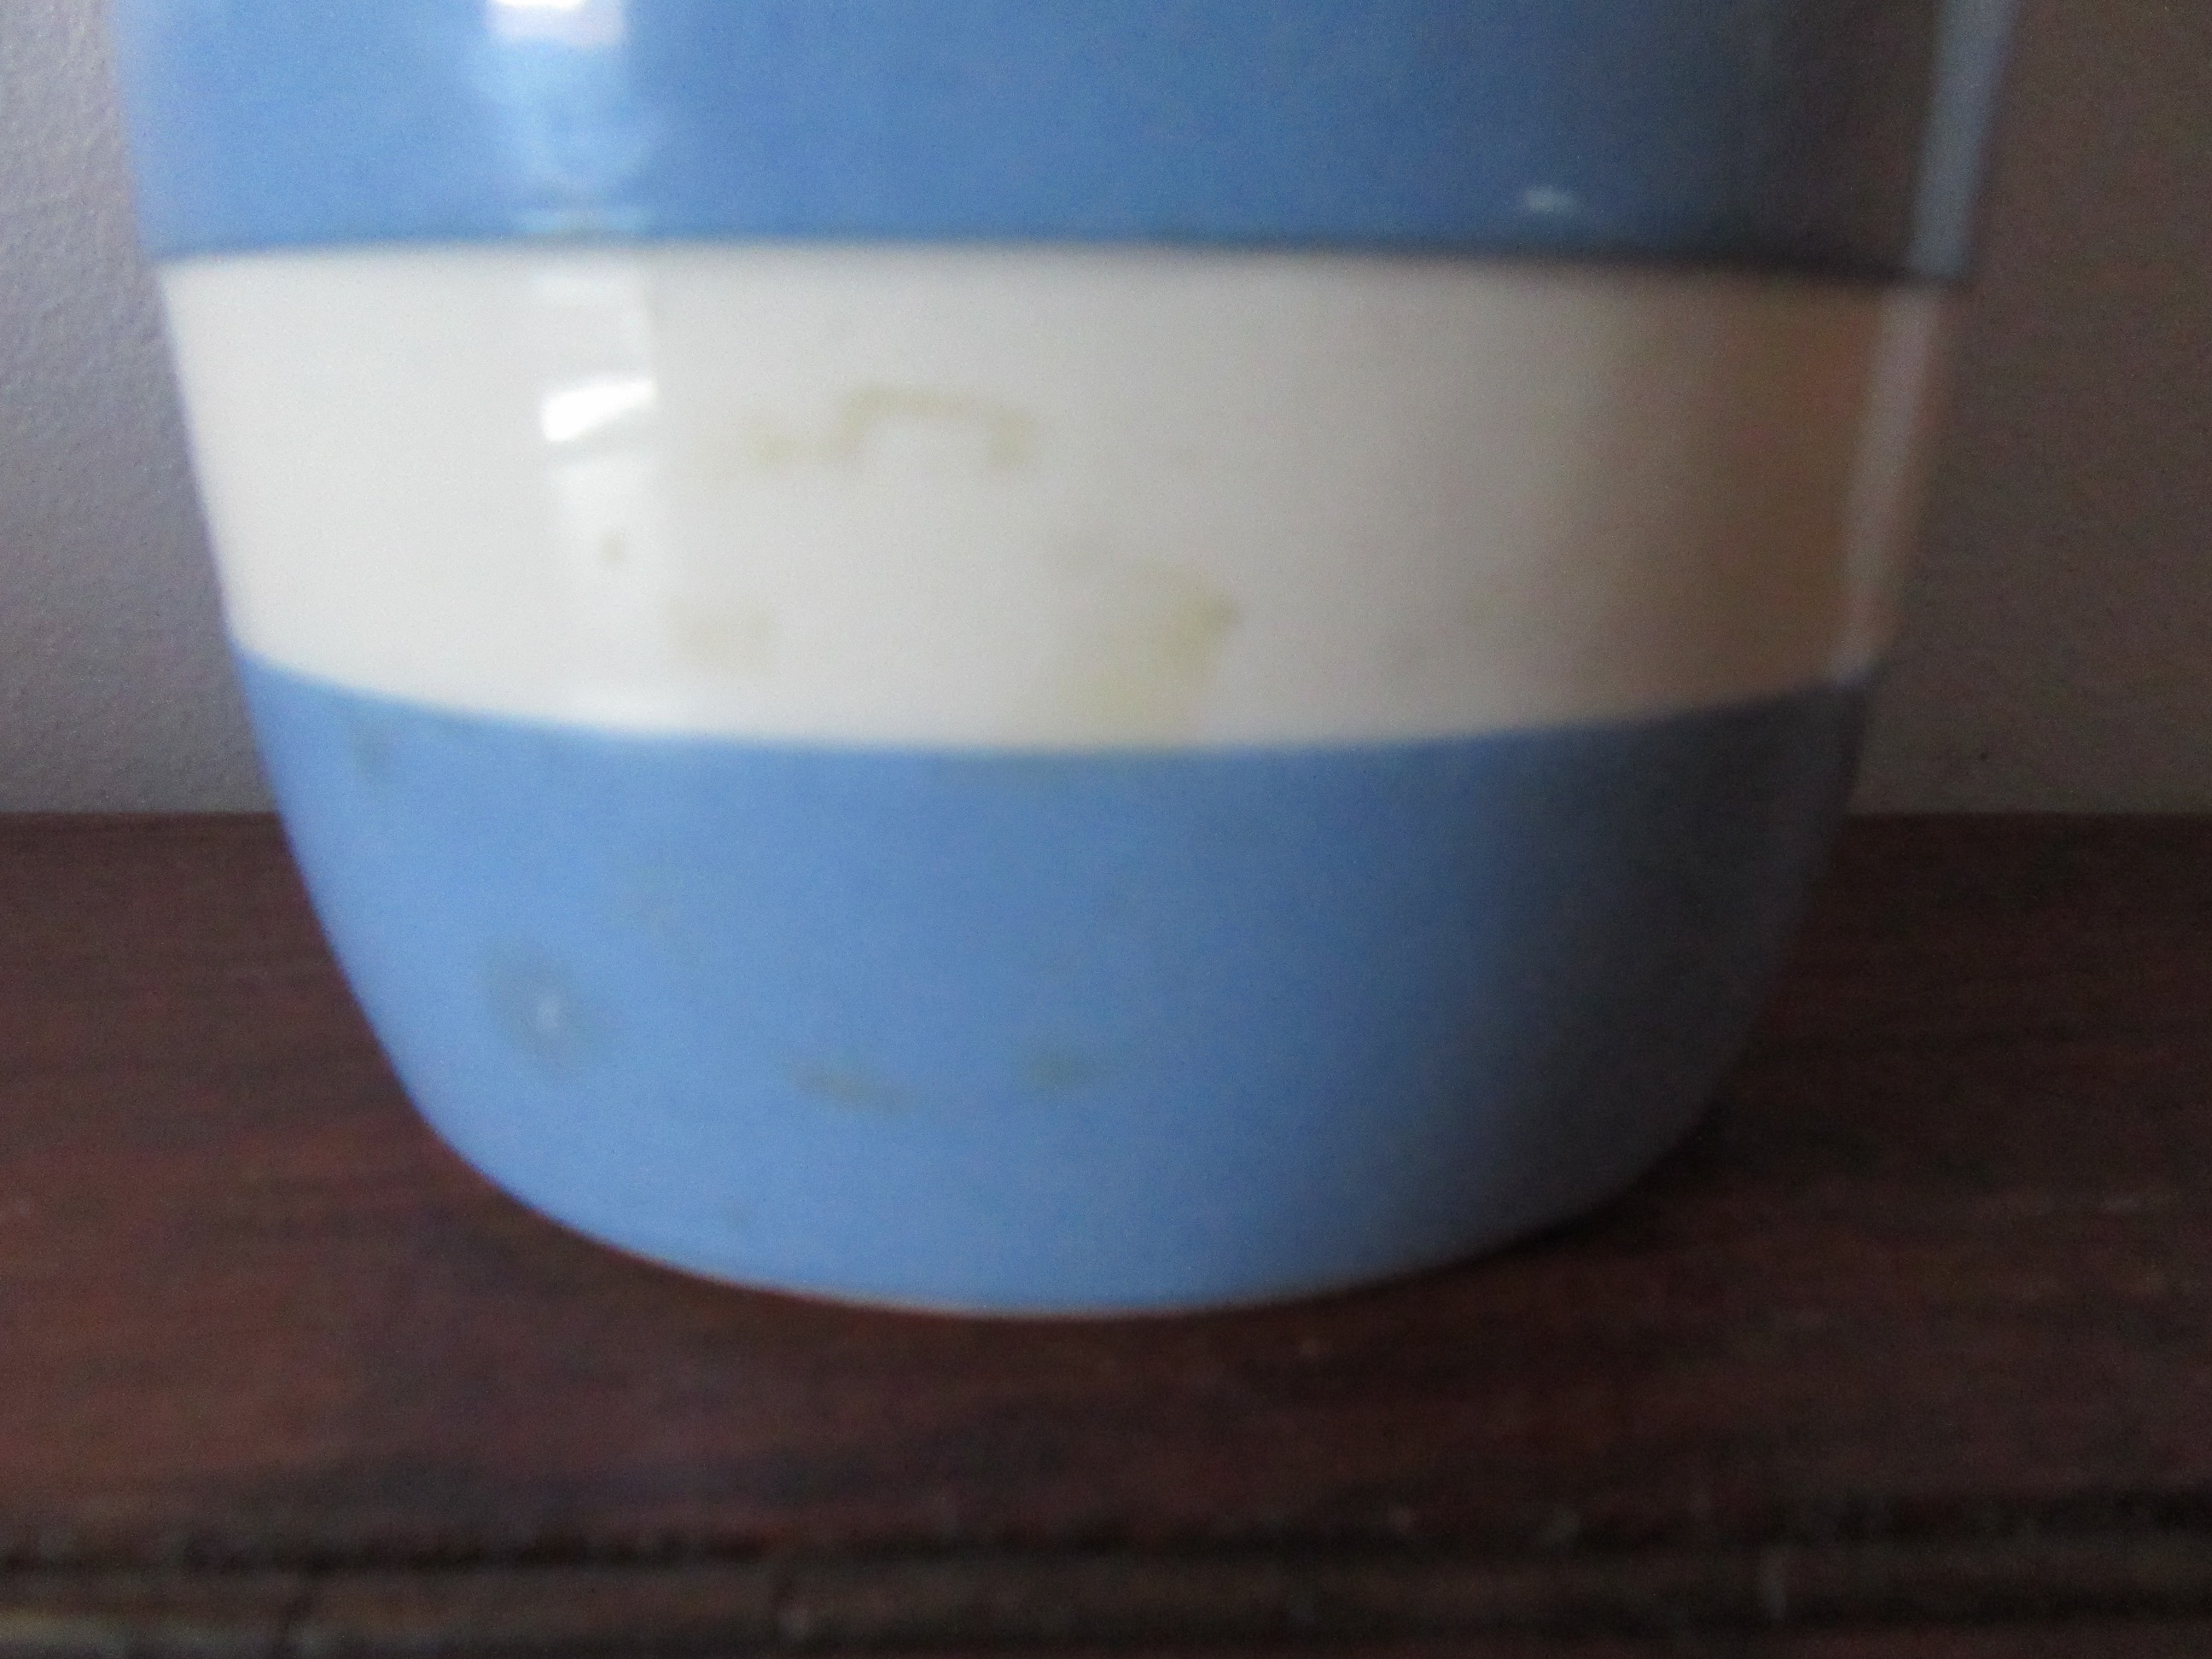 Cornish Ware TG Green Flour Shaker 1930s Blue & White